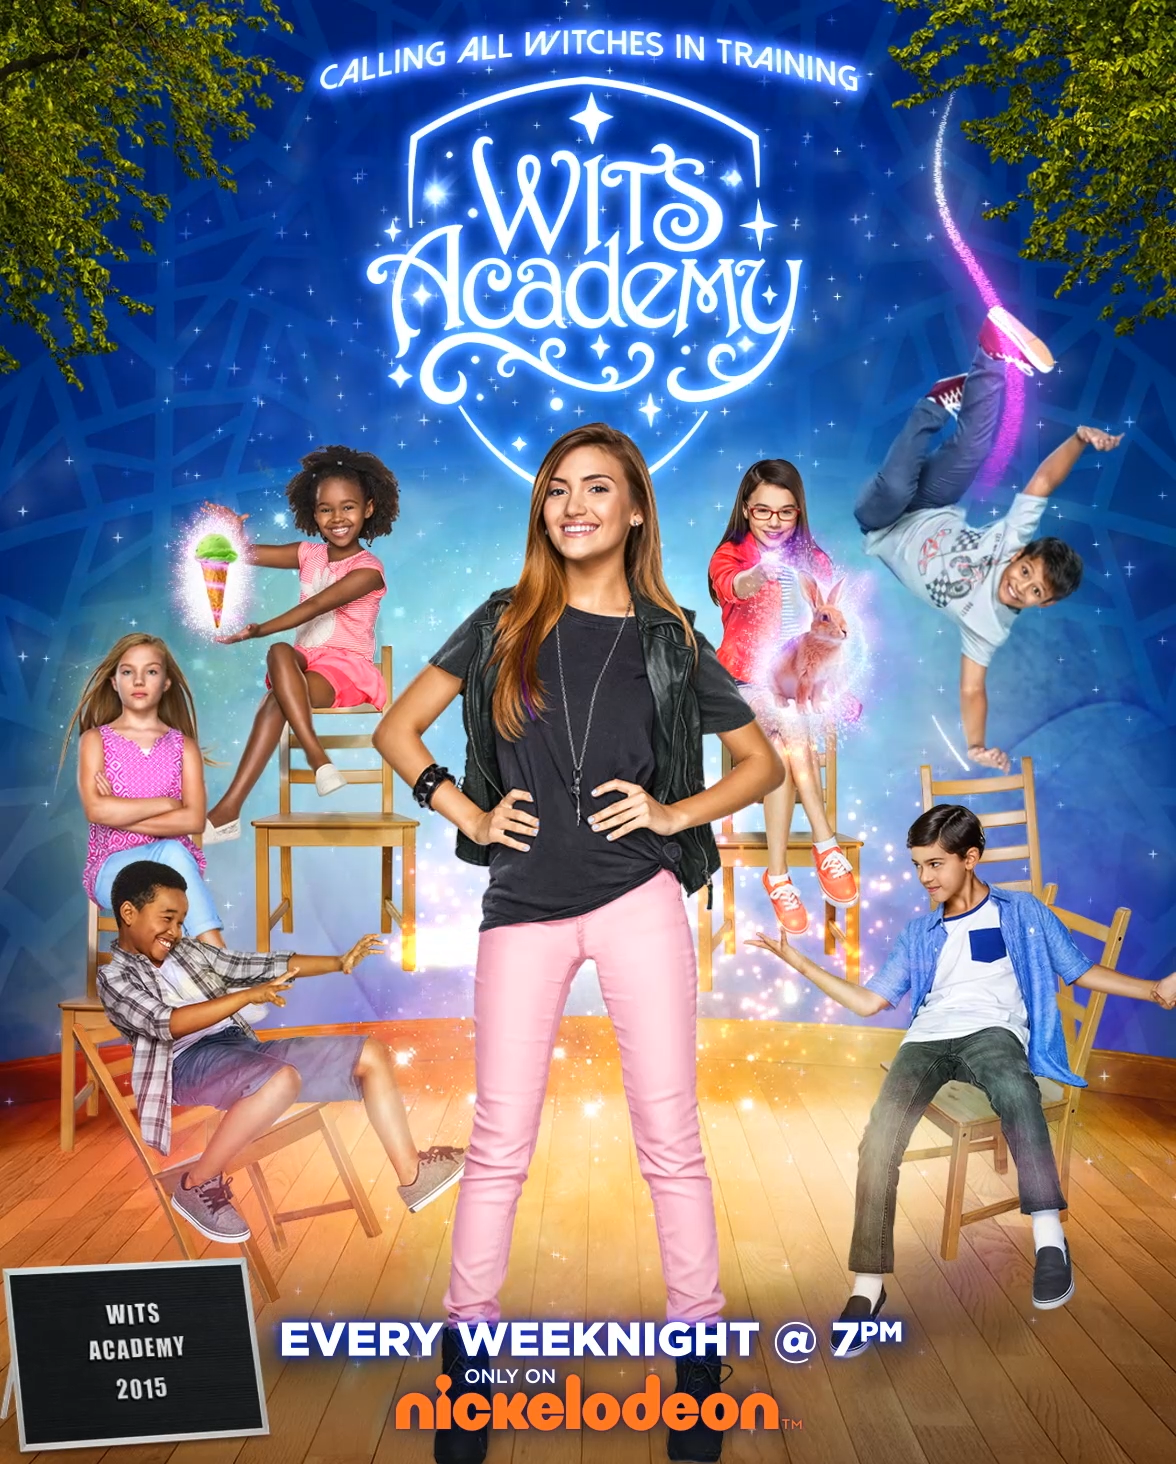 Witts_Academy_02.png